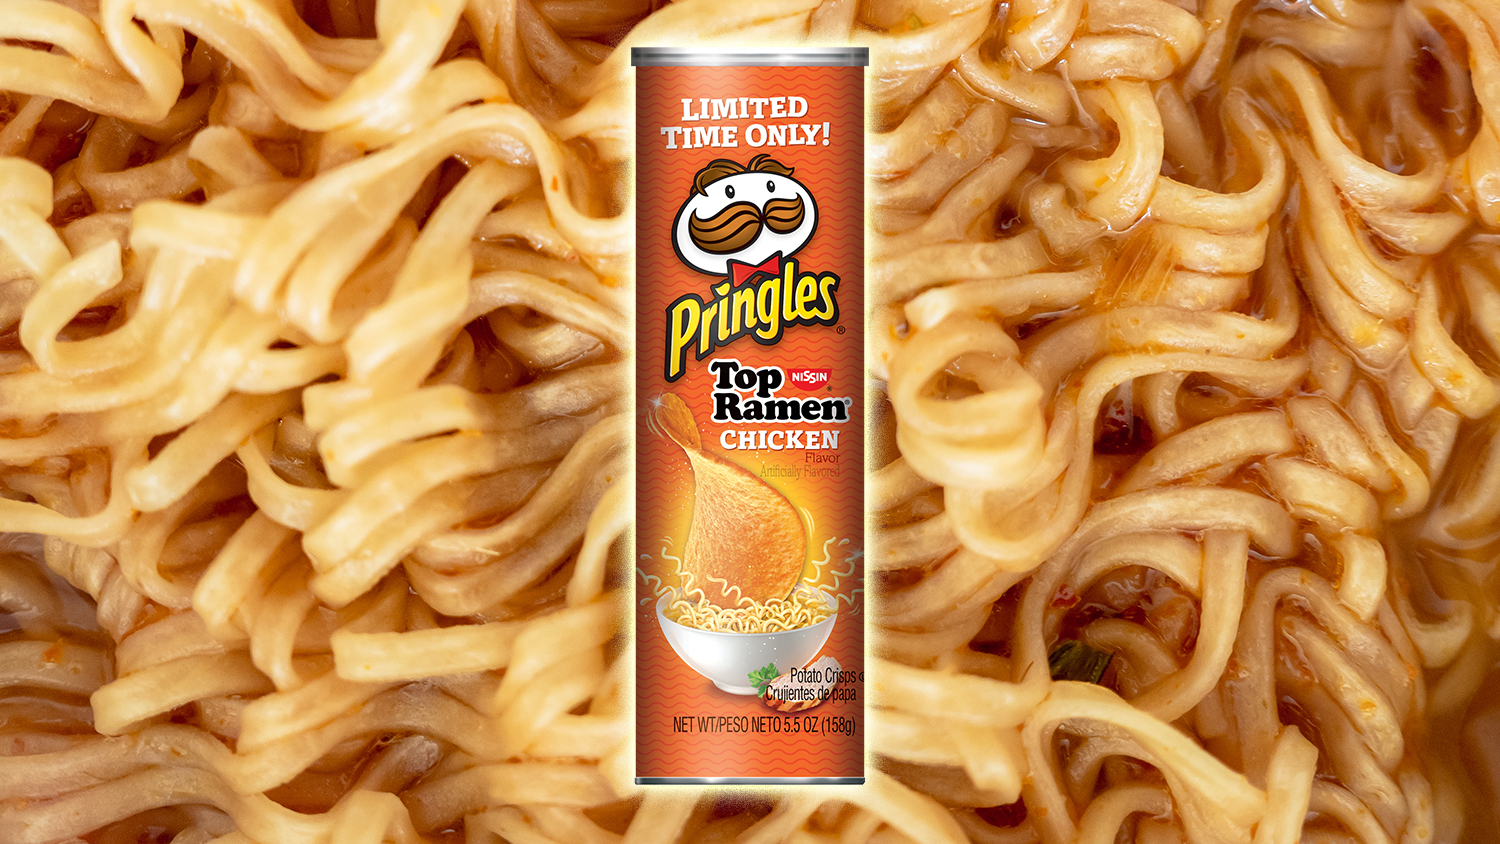 ramen noodles and pringles new flavor mash-up